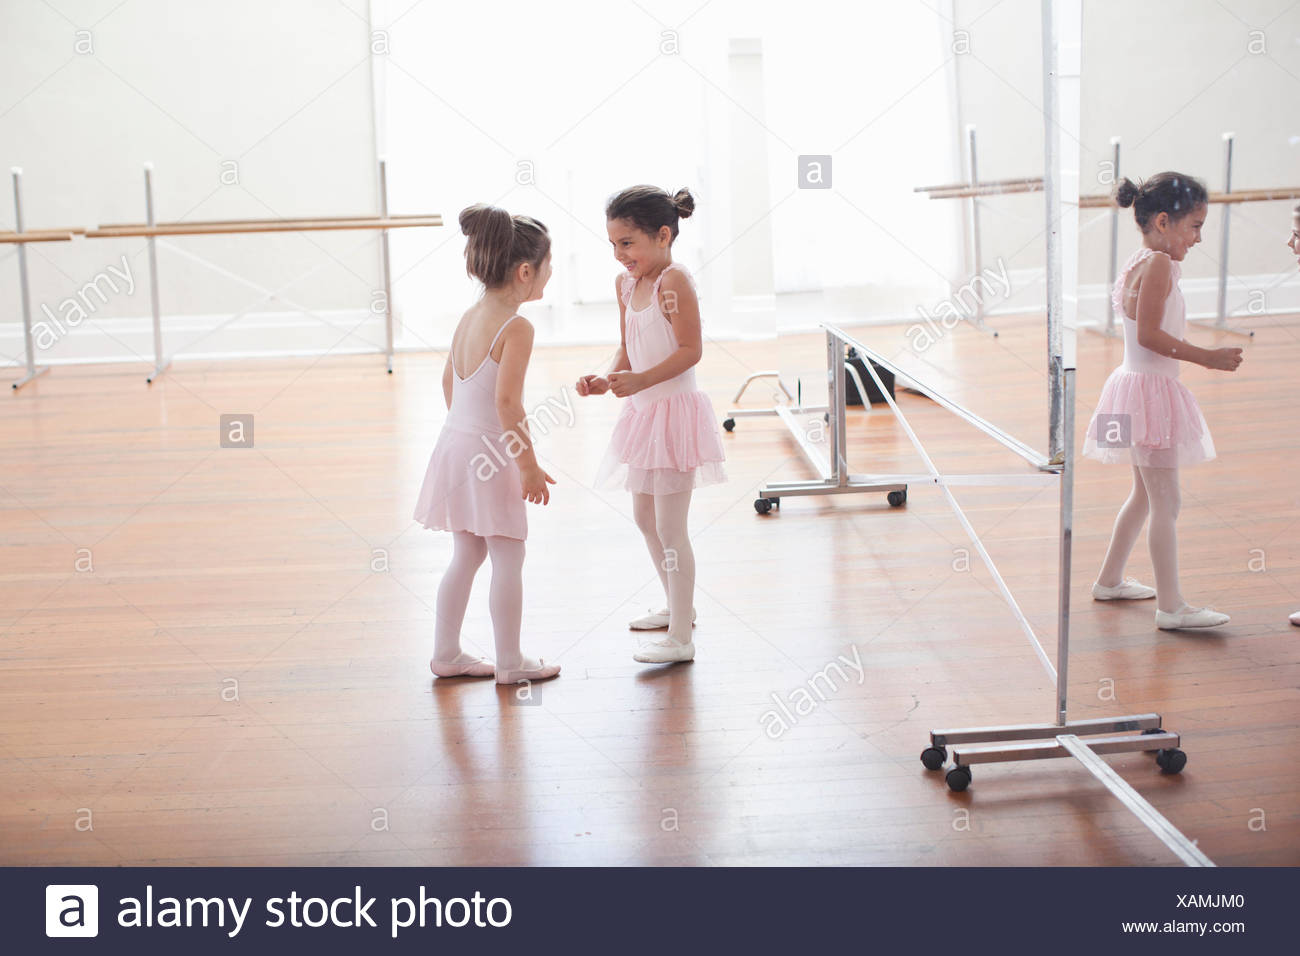 Two child ballerinas chatting in ballet school - Stock Image